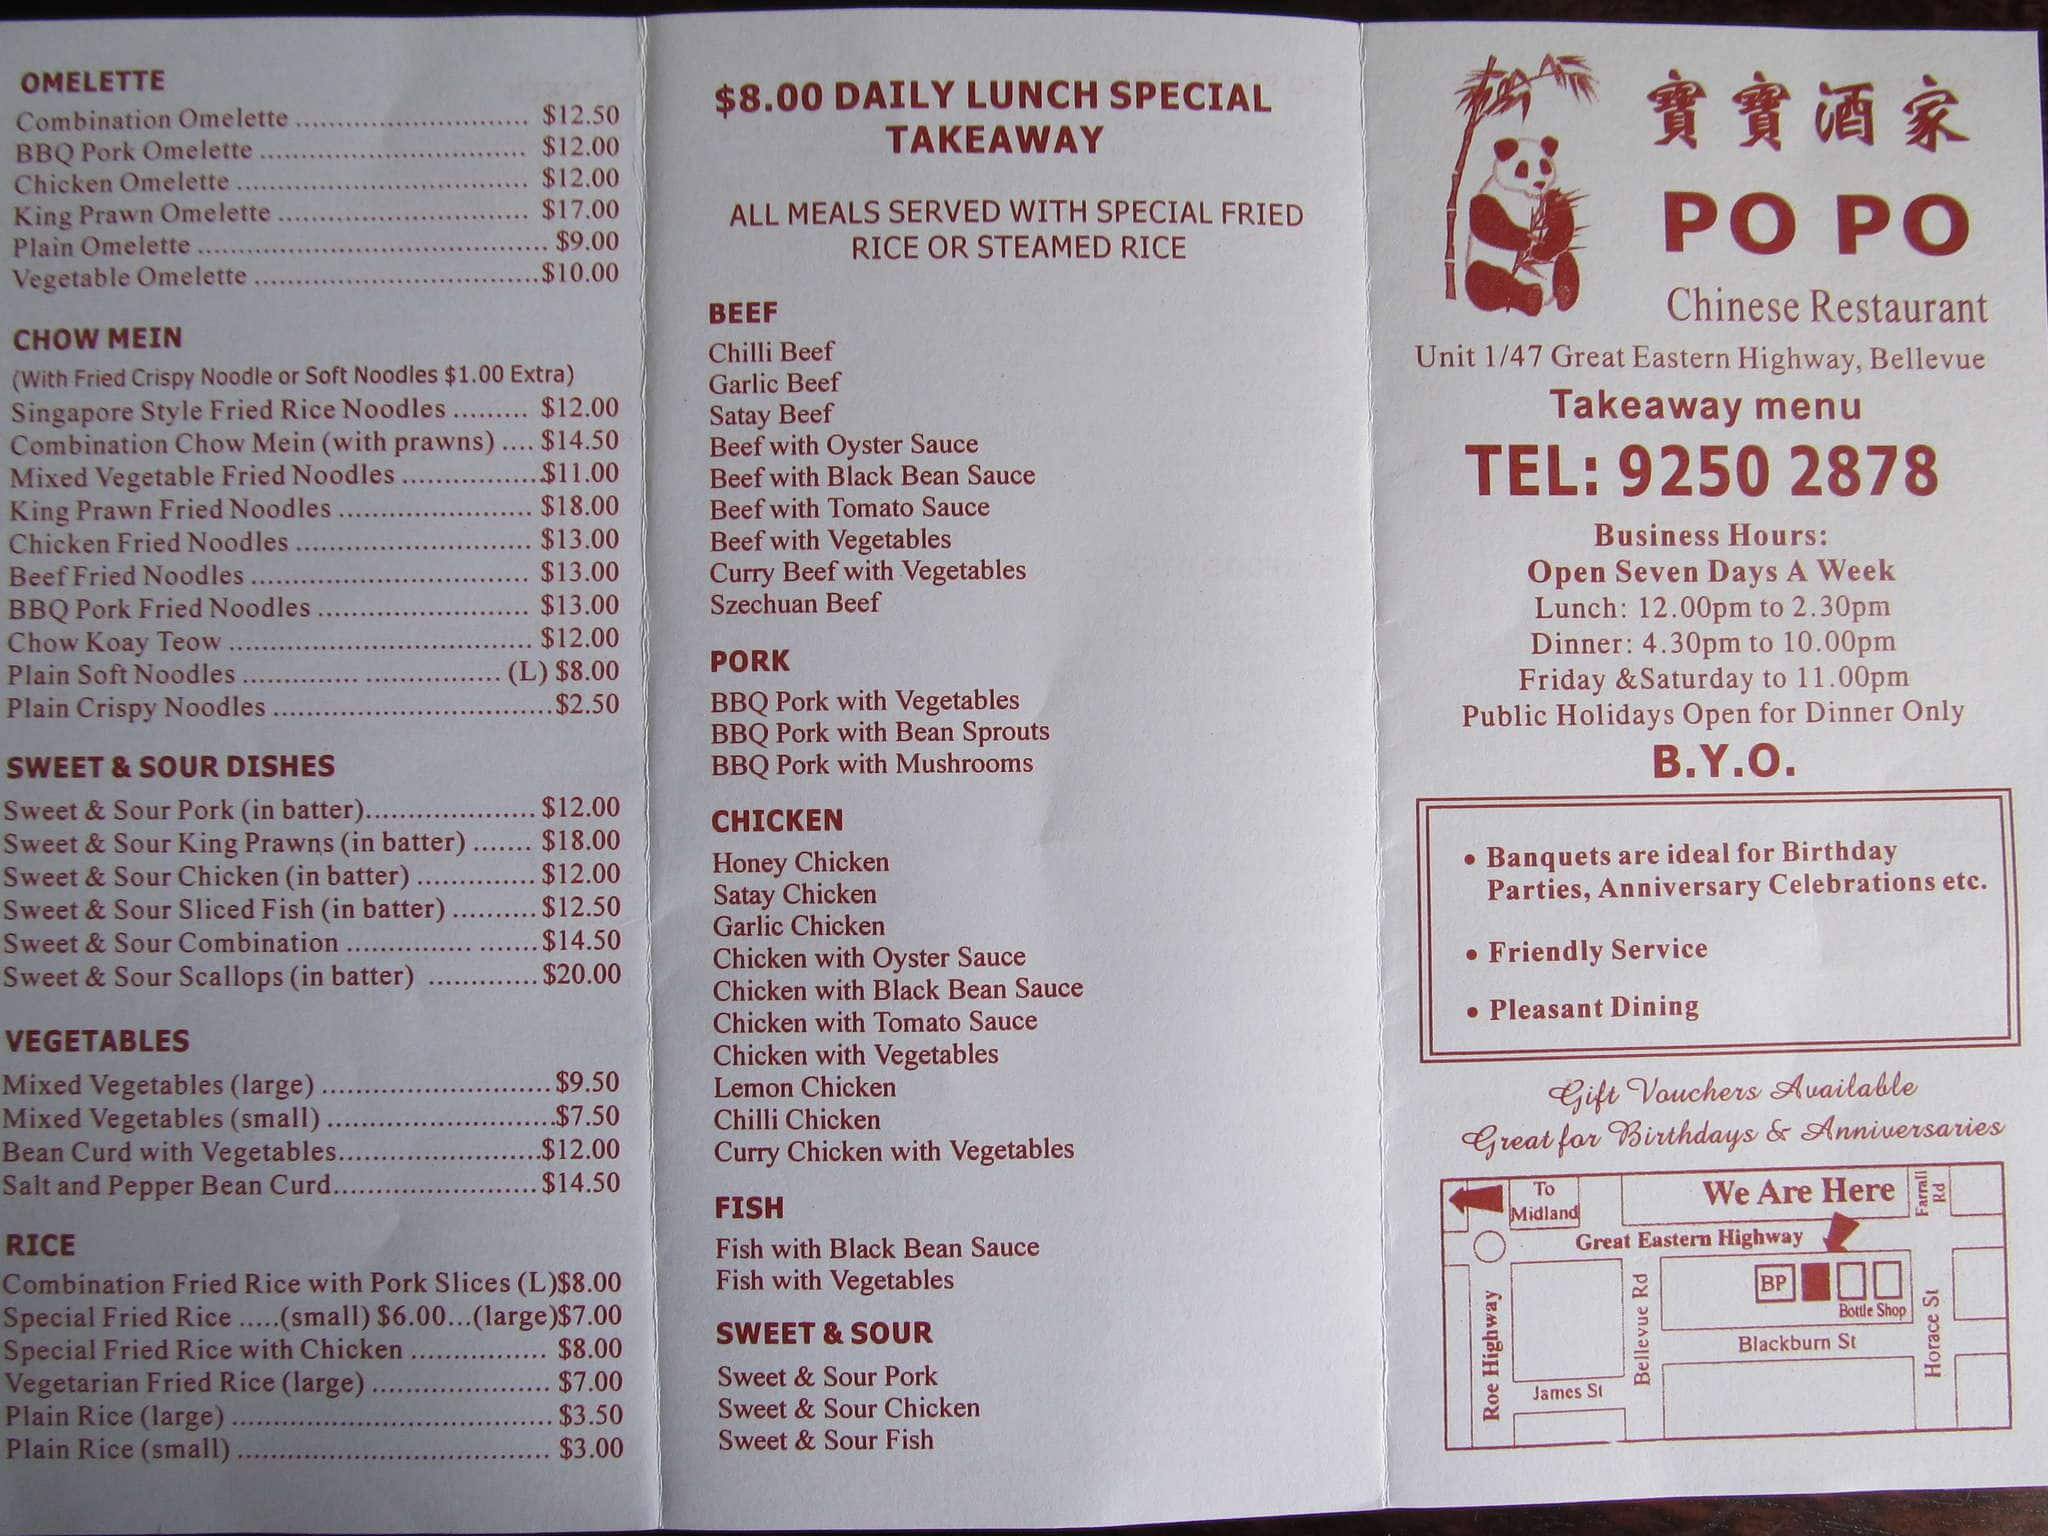 Po po chinese restaurant menu menu for po po chinese for Australian cuisine menu